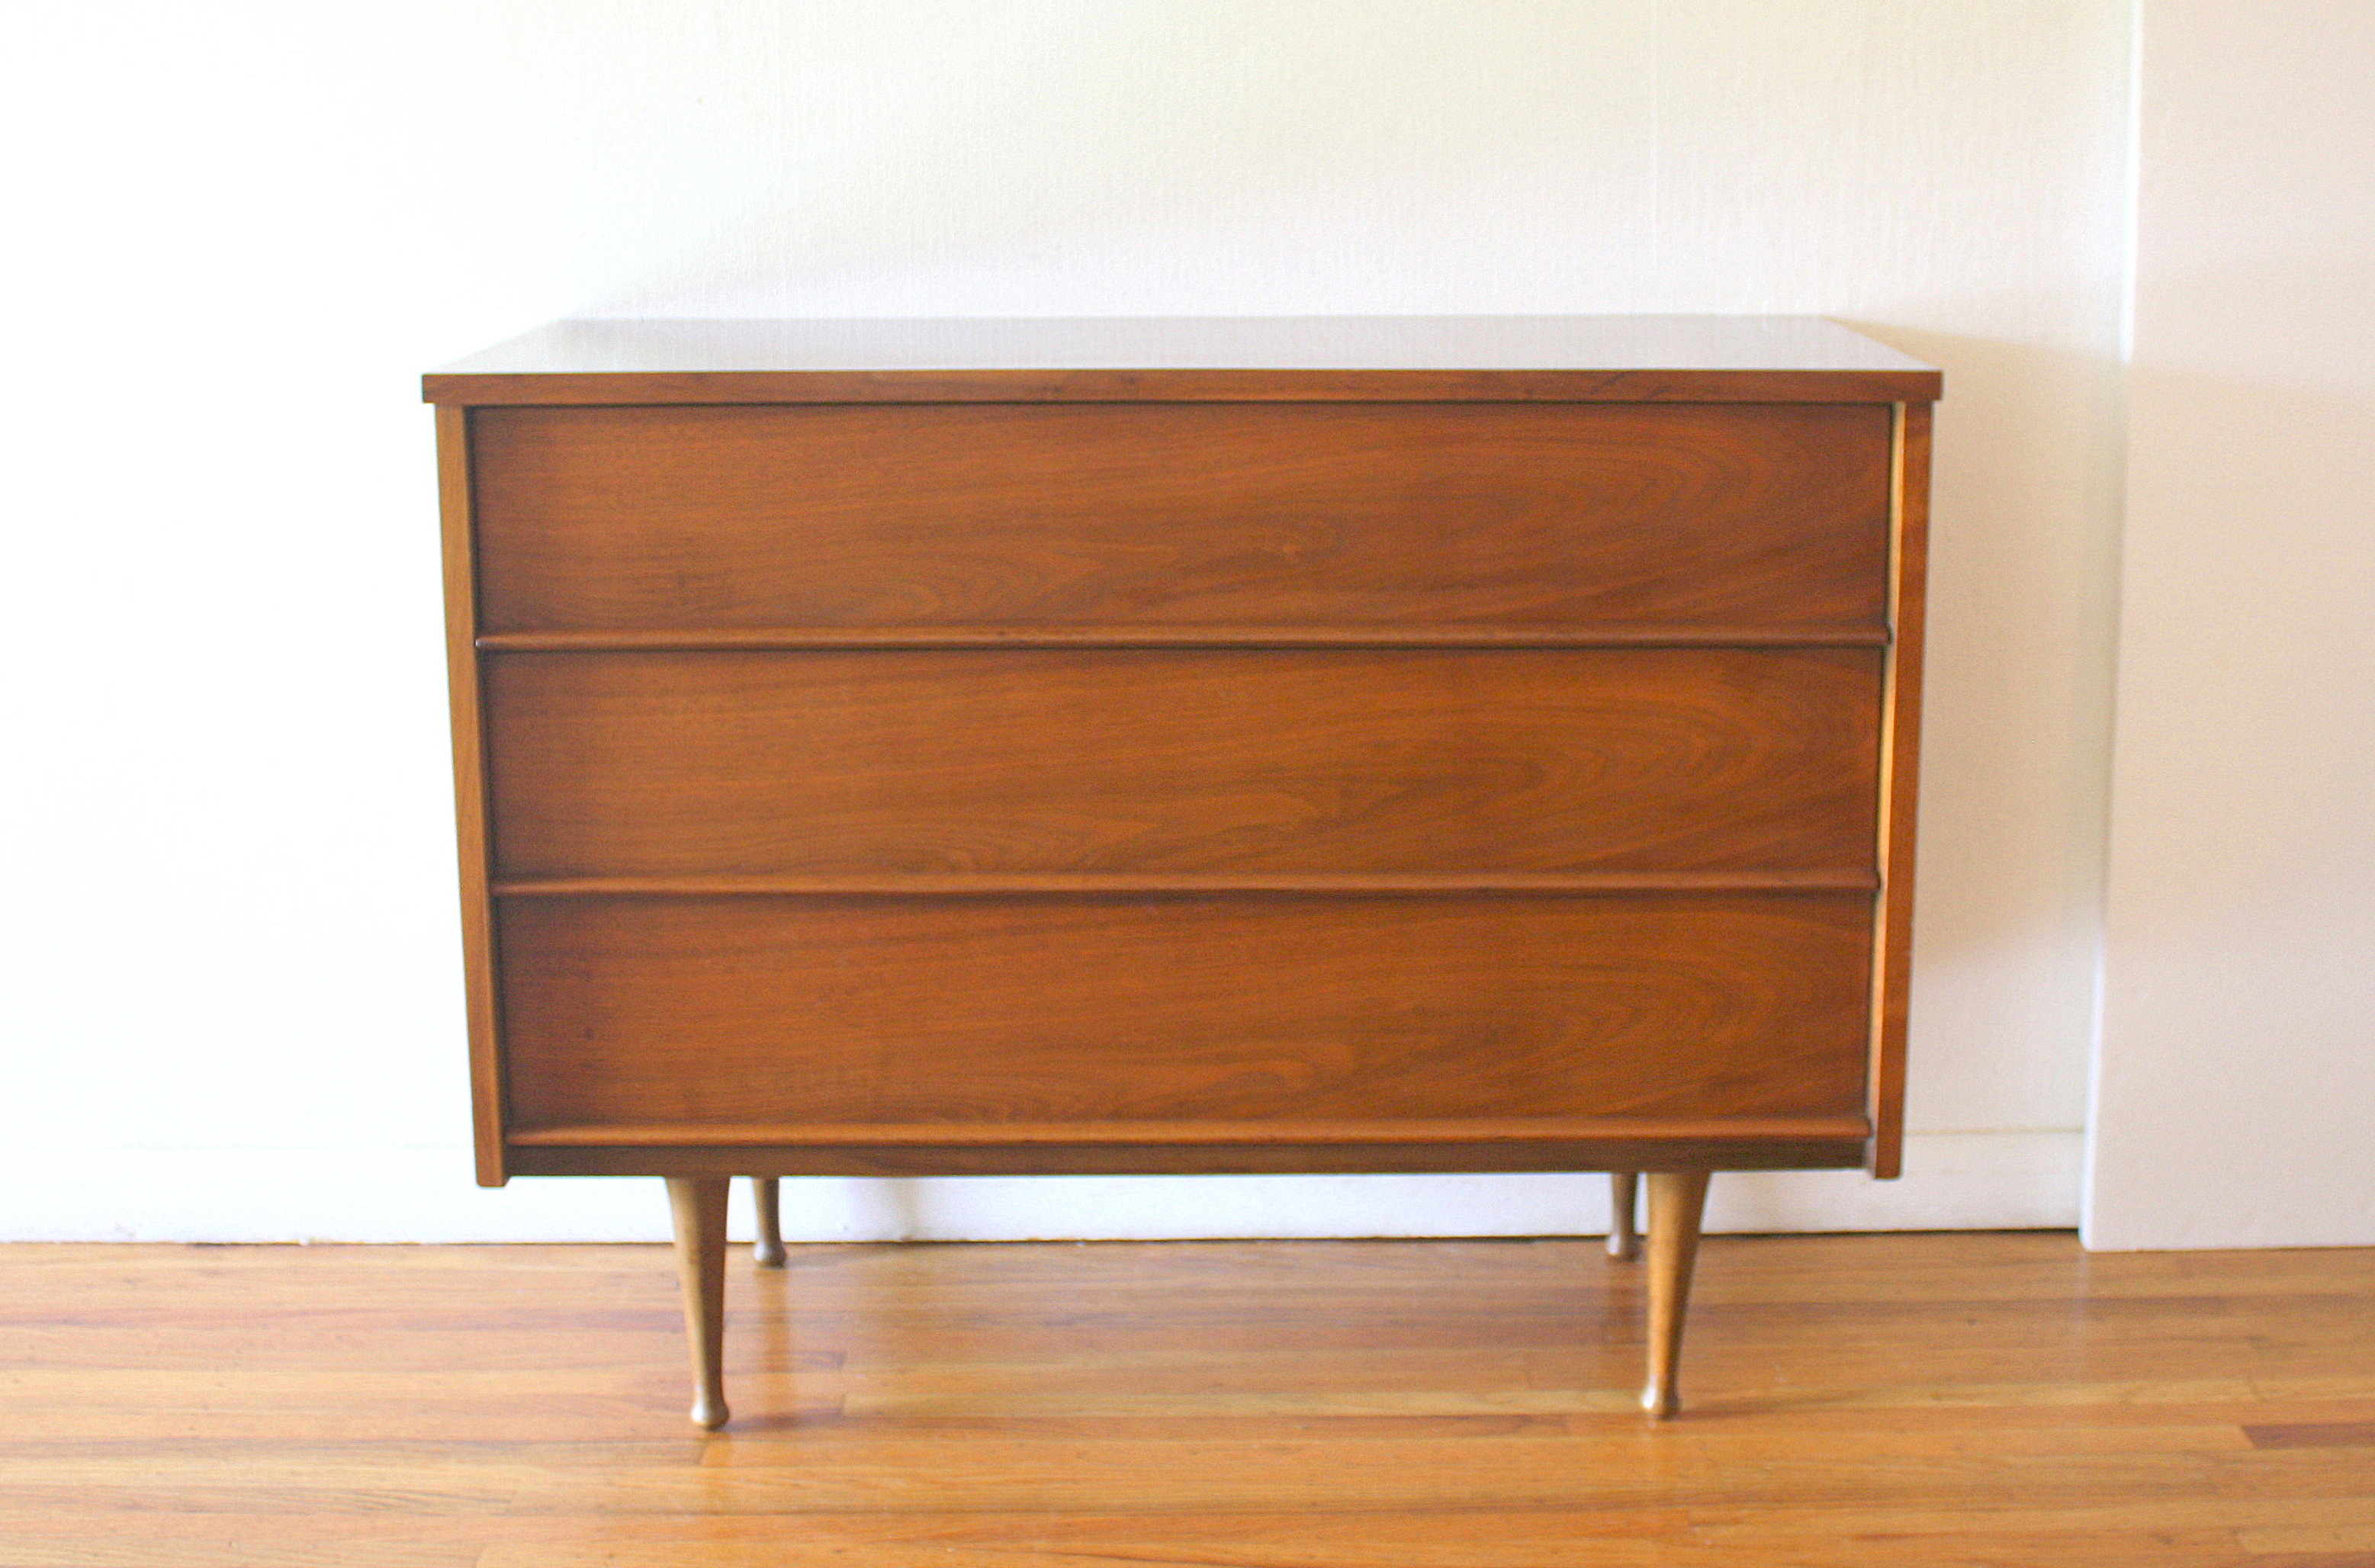 mcm streamlined low dresser 1.JPG